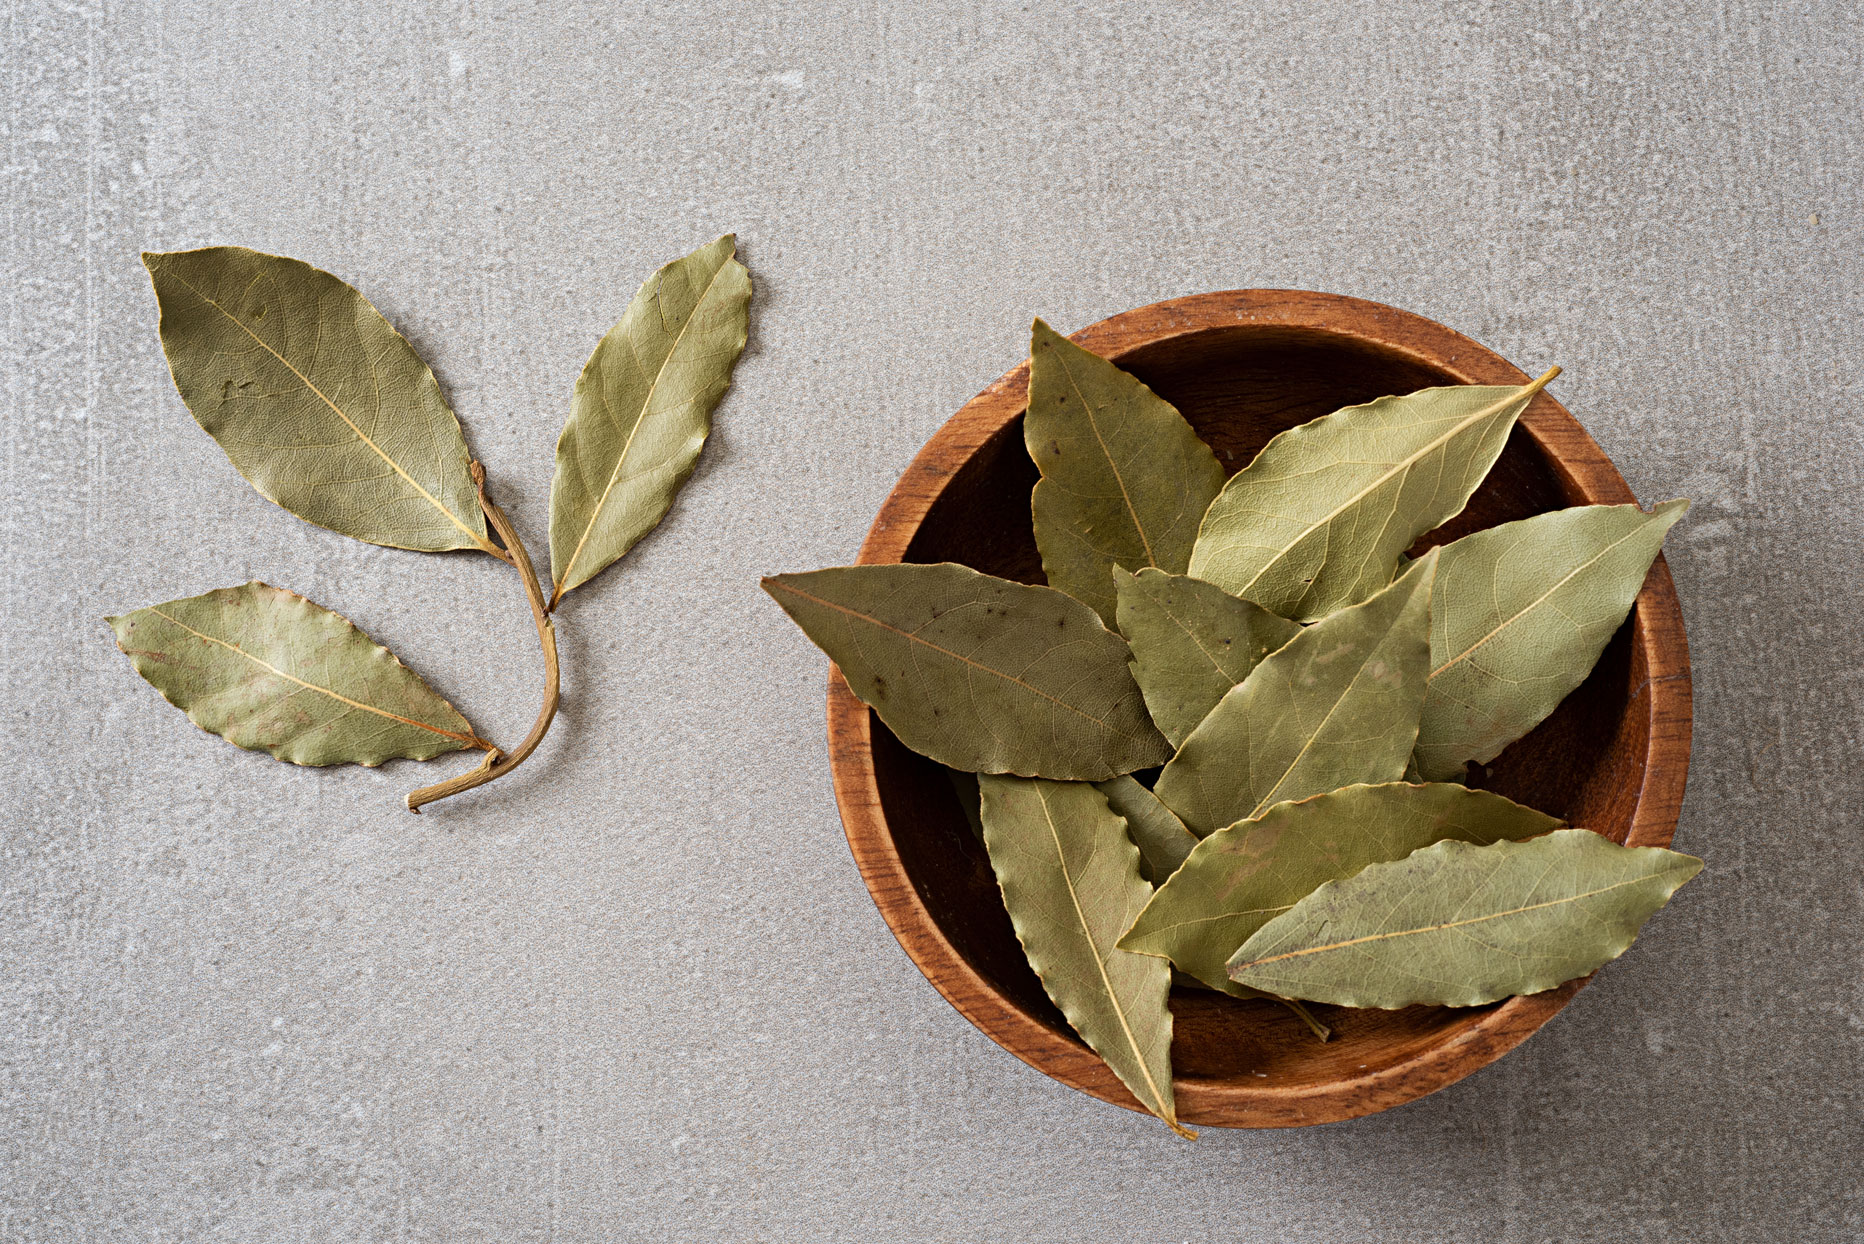 Bay leaves in a wooden bowl